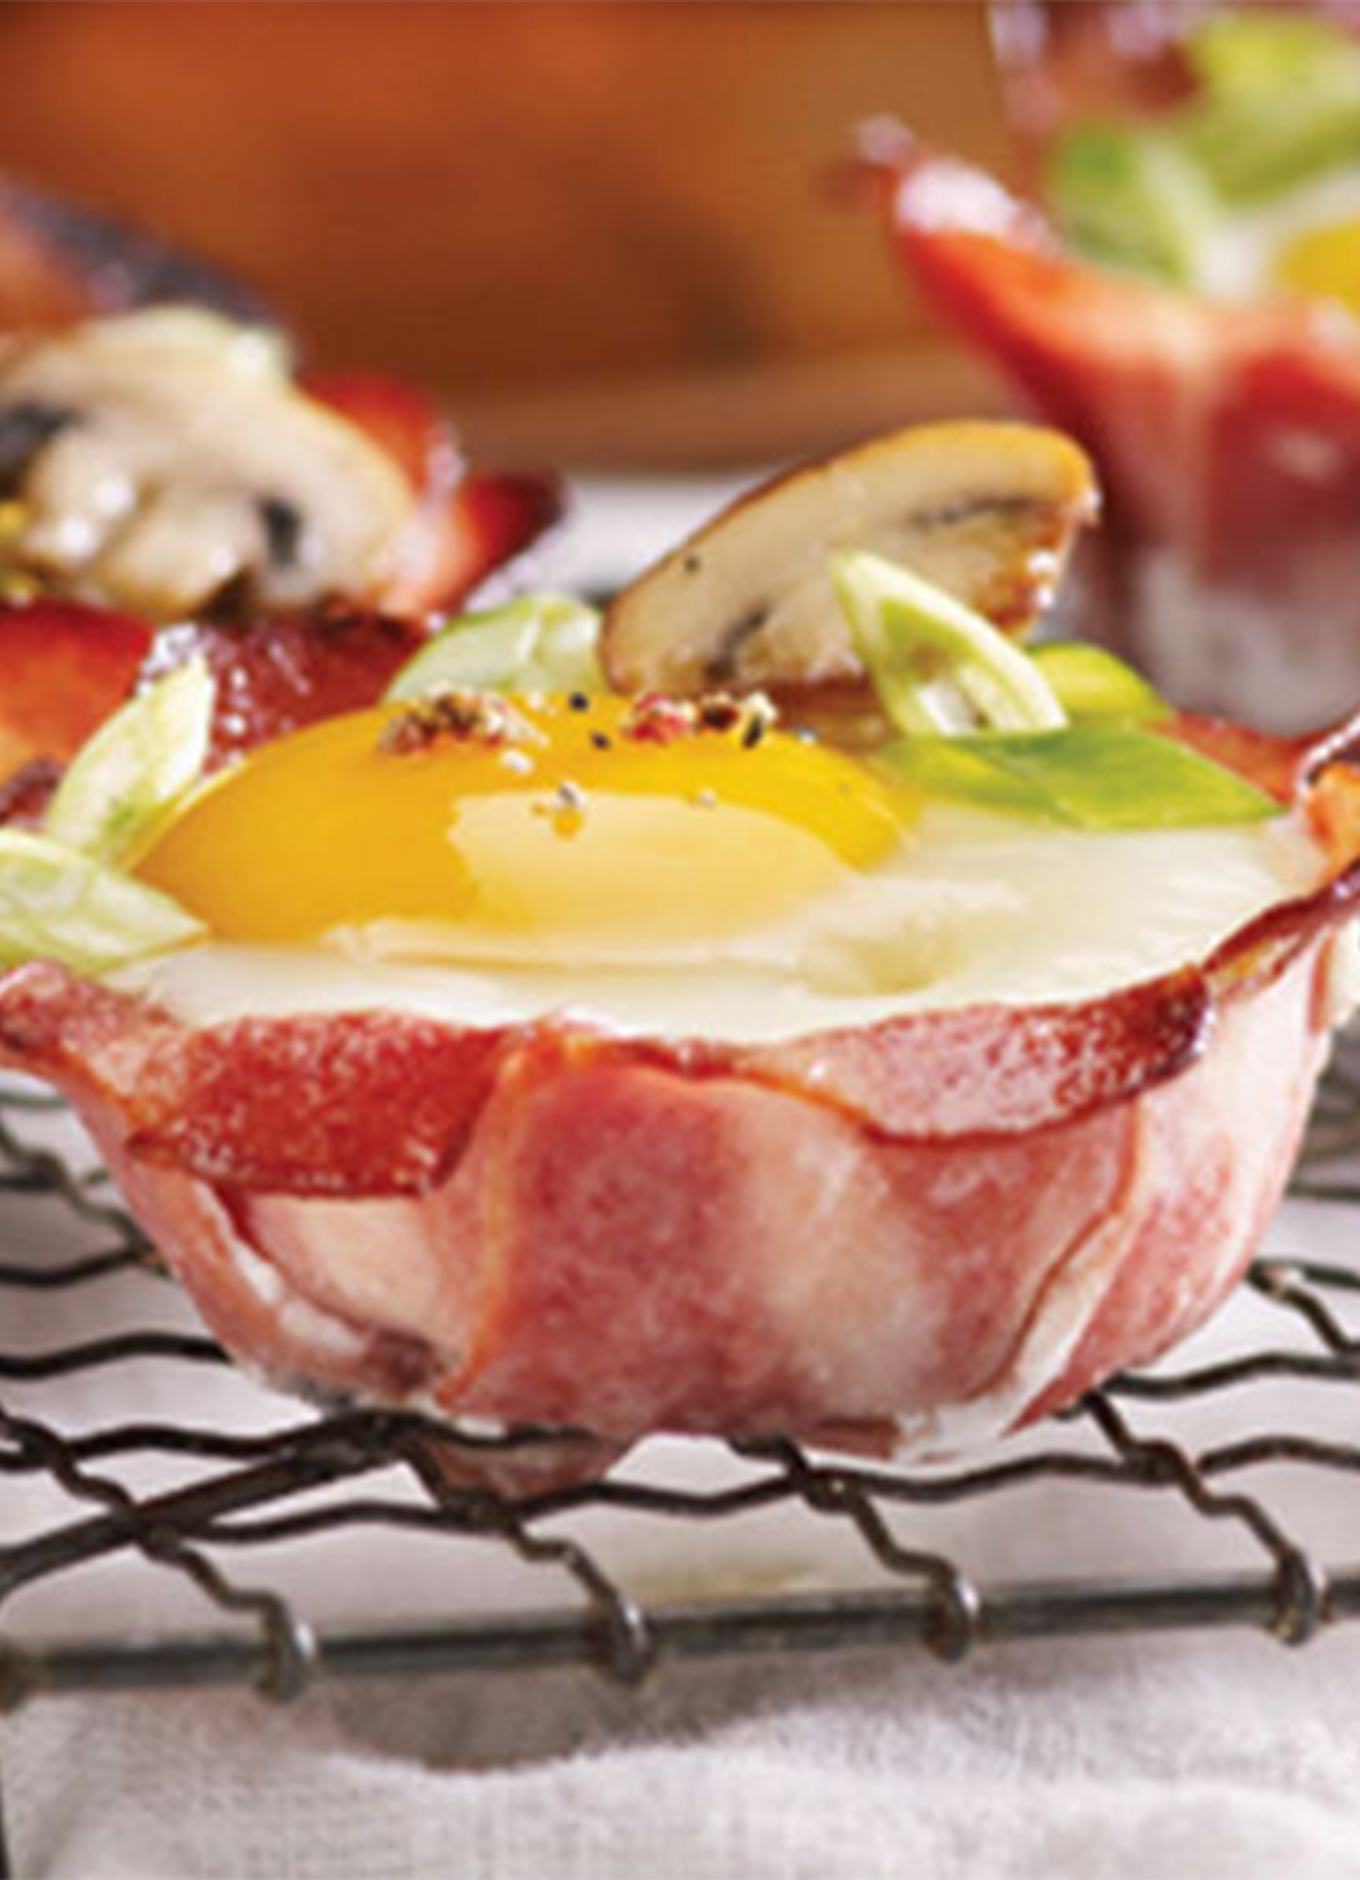 A tray of Breakfast Chicken Strips cups filled with eggs and topped with veggies.